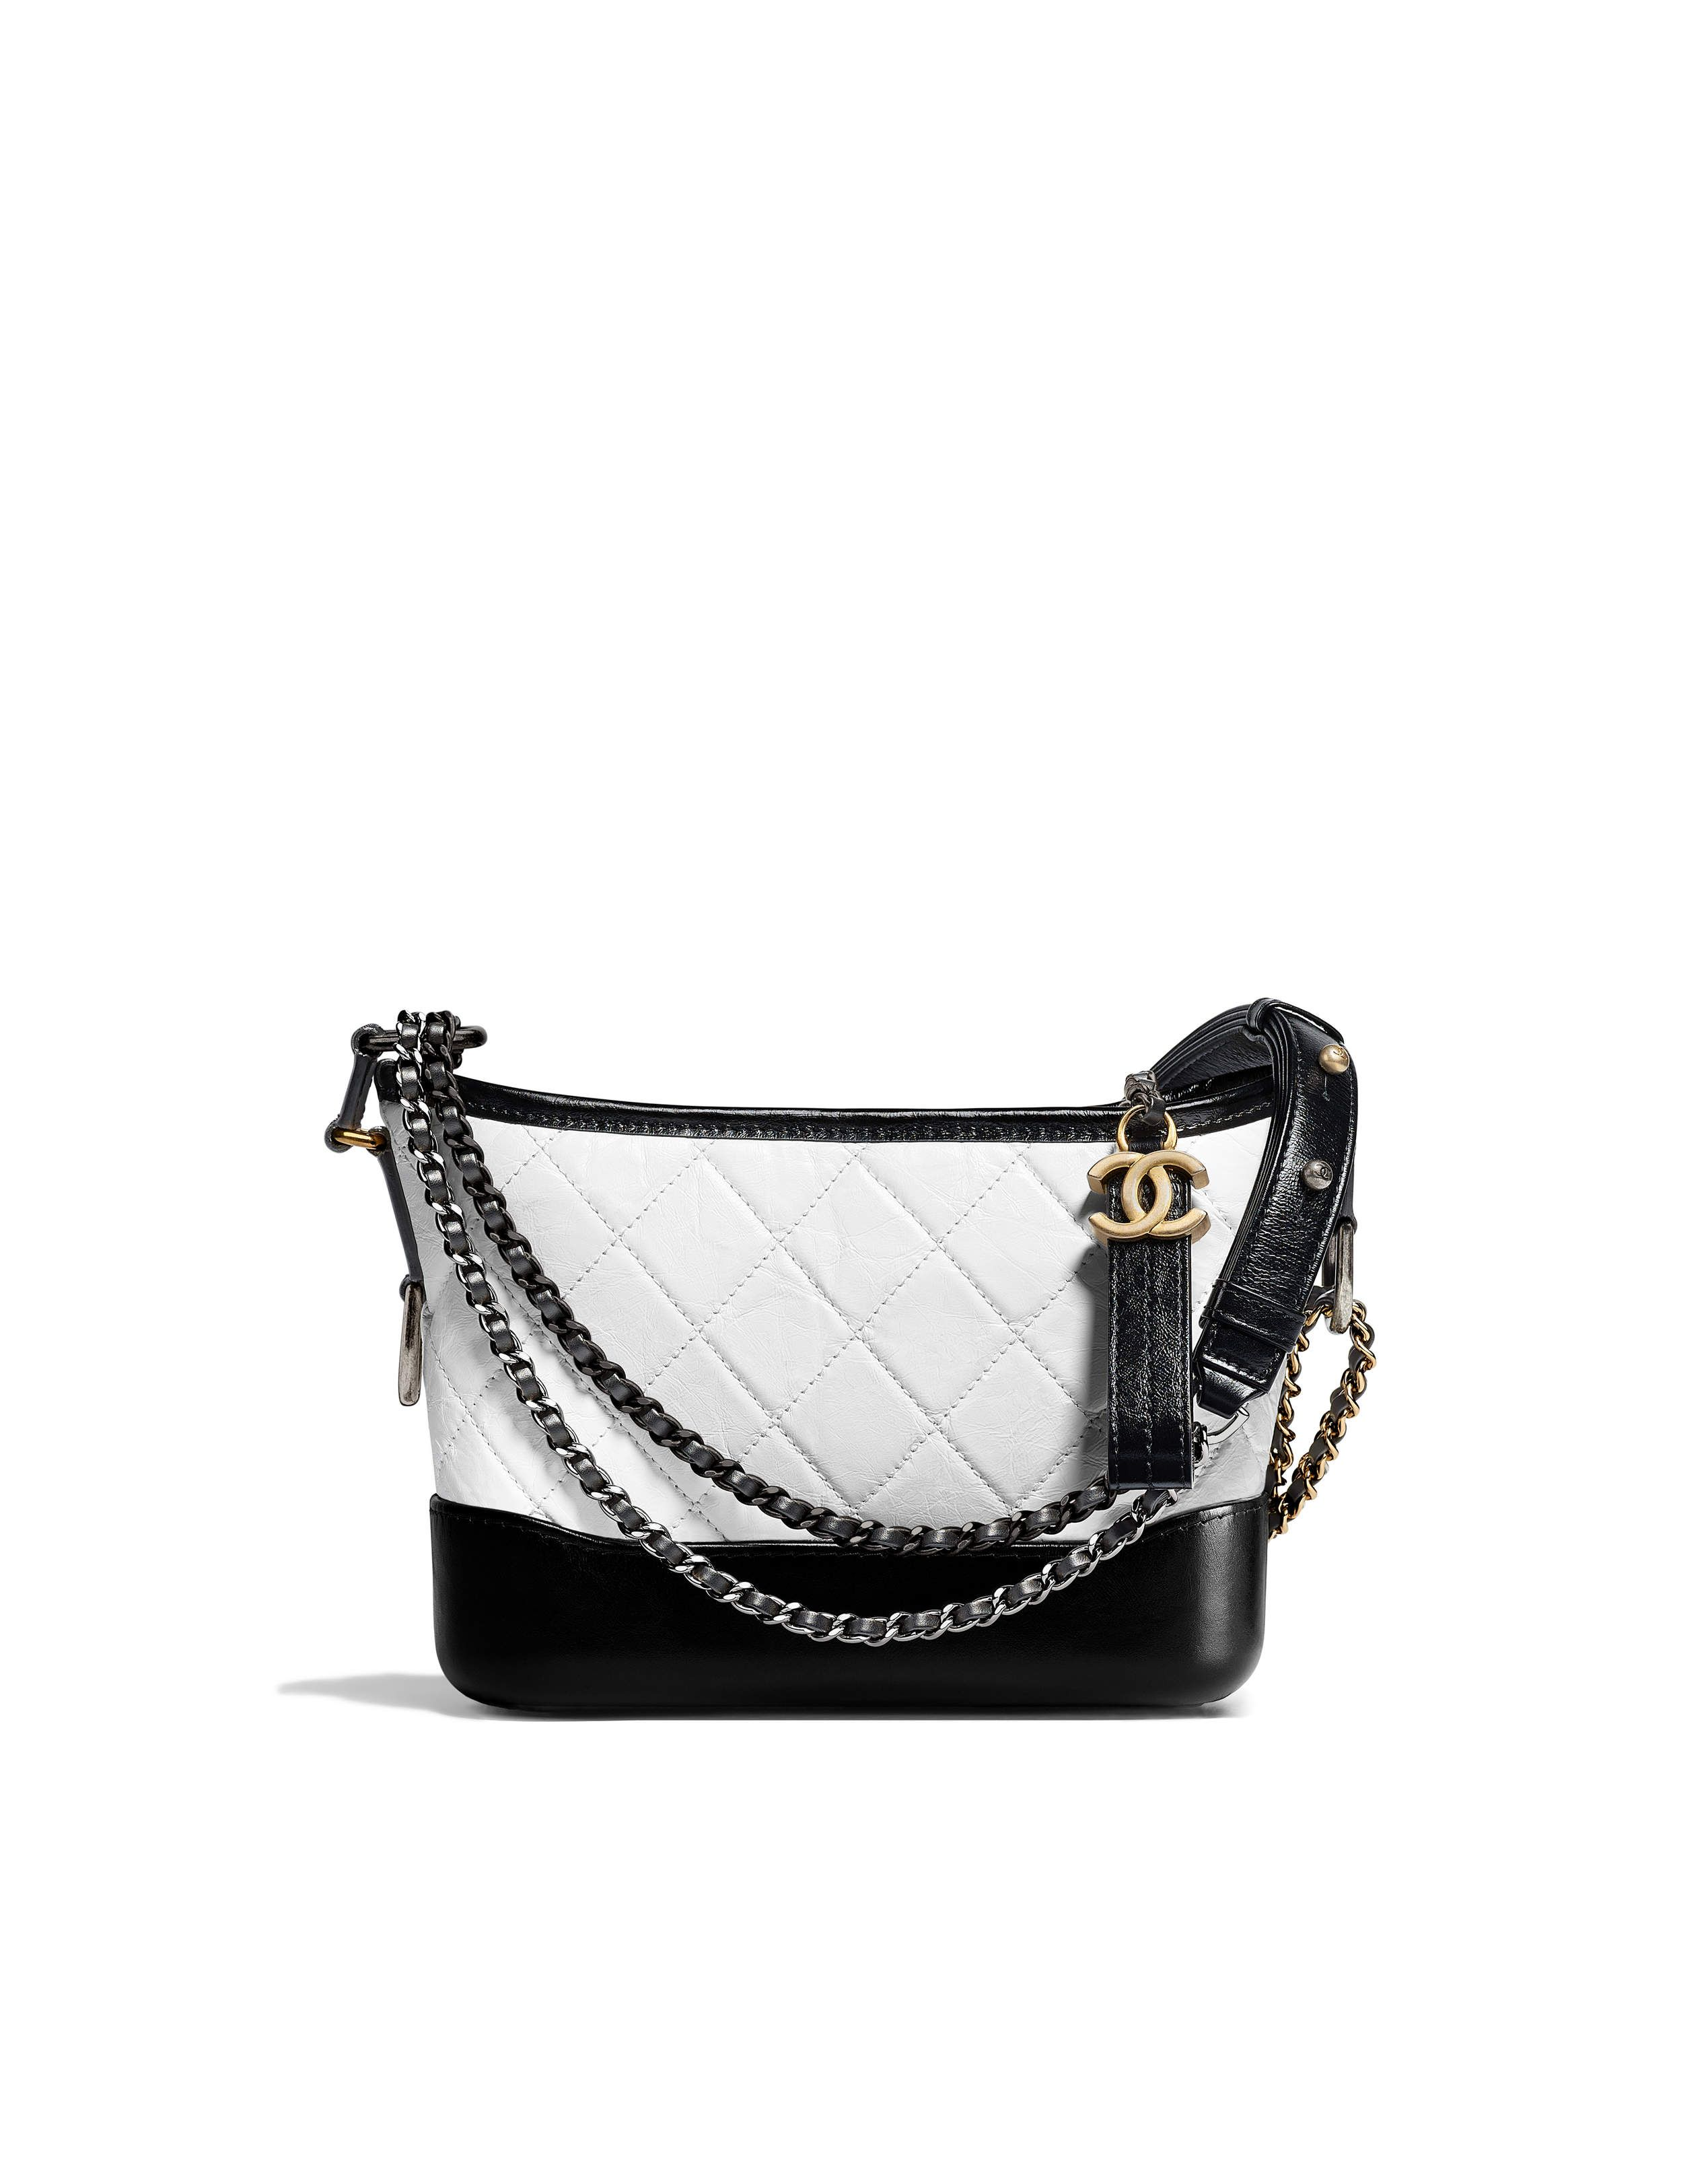 Chanel Fw 2017 2018 White Black Aged Calfskin S Gabrielle Small Hobo Bag